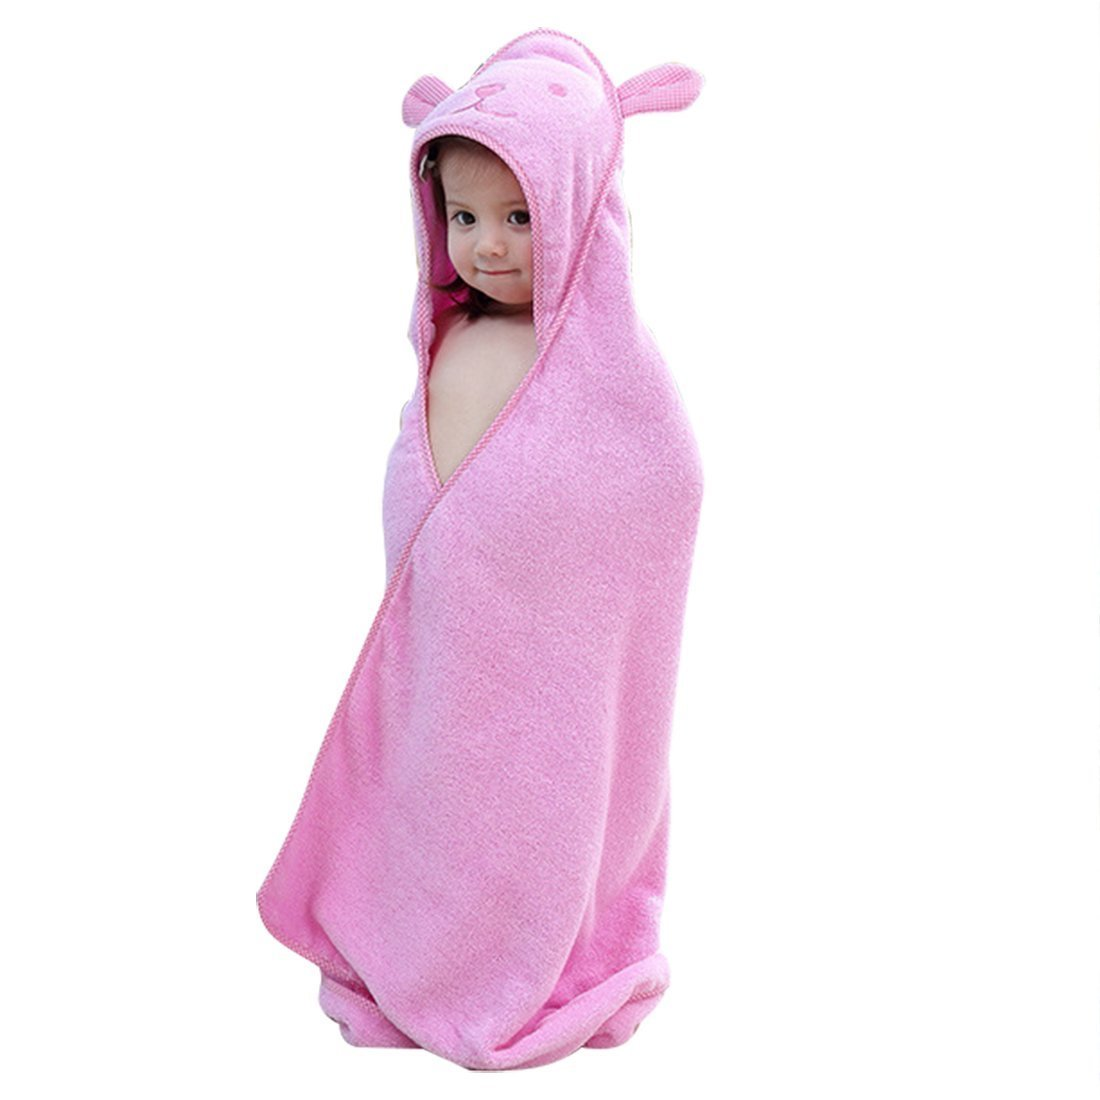 Baby Hooded Towel with Bear Ear- Soft and Thick 100% Cotton Bath Set for Girls, Boys, Infant ad Toddler, Good Choice (Blue) BBtowel-4 4335342249